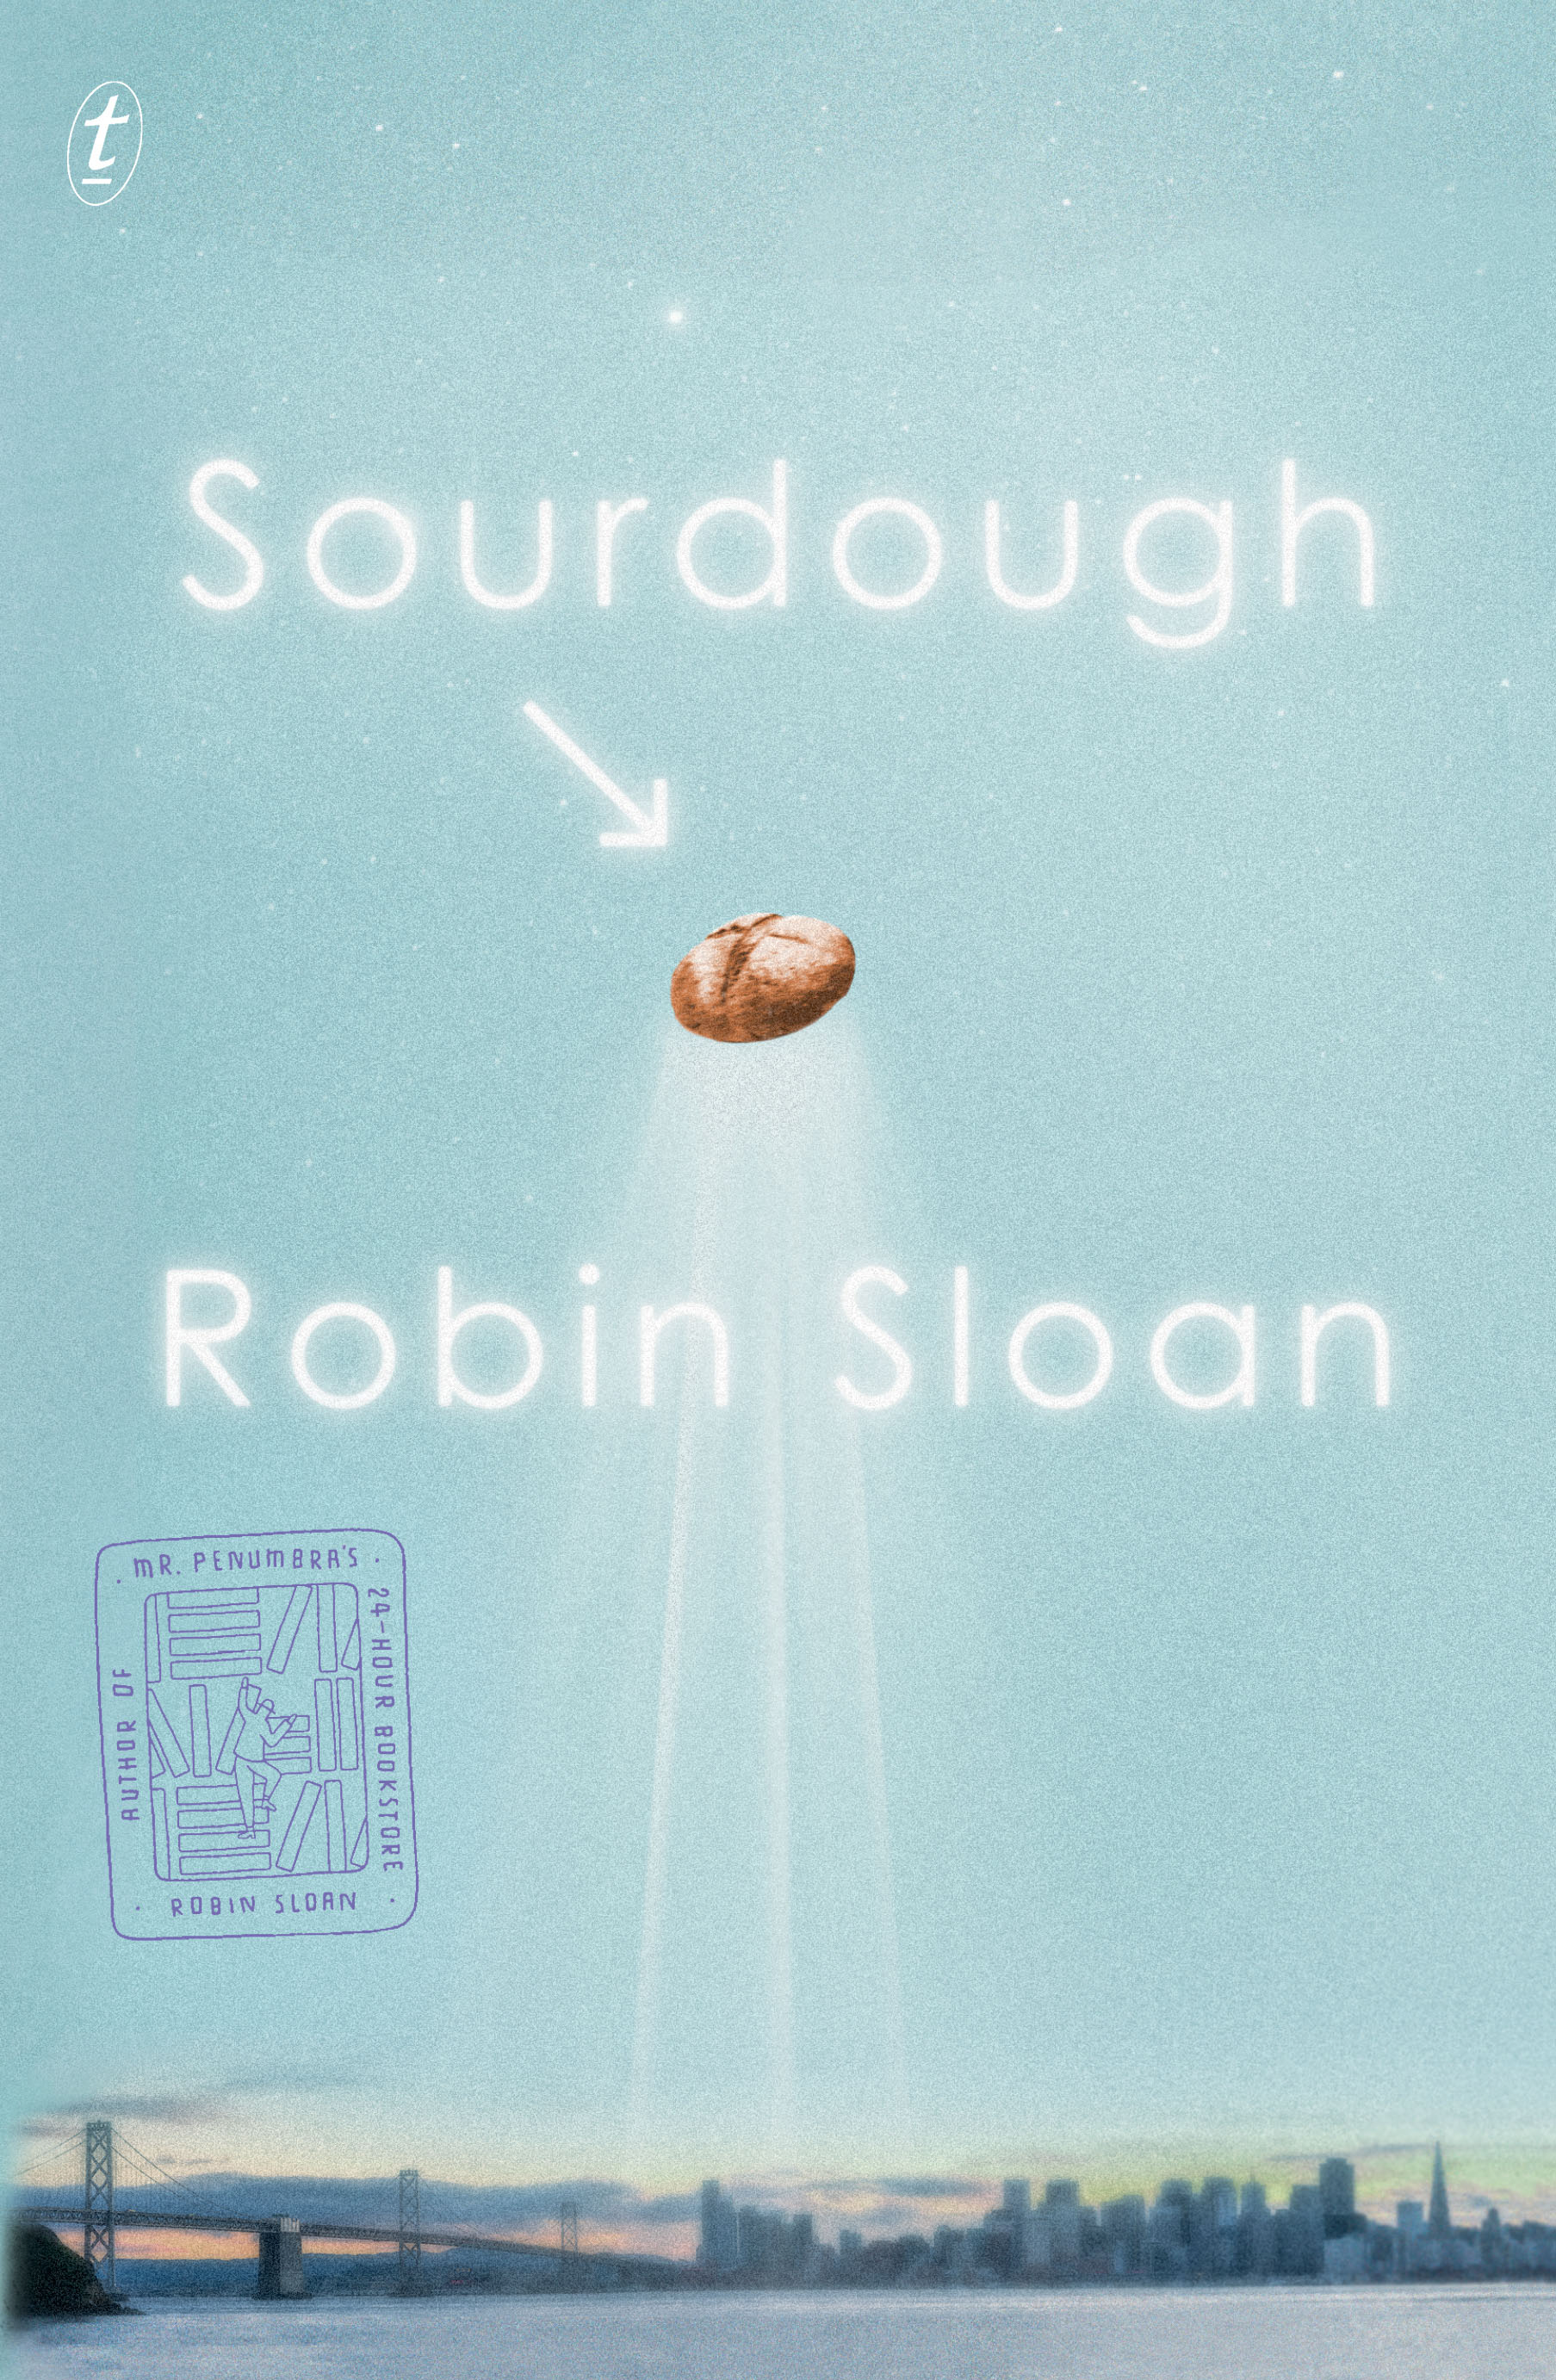 Sourdough by Robin Sloan - When Jen offered to write today's book review, I knew my readers and I would all be in for a treat! Jen has the best taste in books (which makes sense as she's a librarian) and her reviews are always great. I had never heard of the book Sourdoughuntil she brought it up and upon reading the review, I picked it up on Audible.com. Check it out, guys: